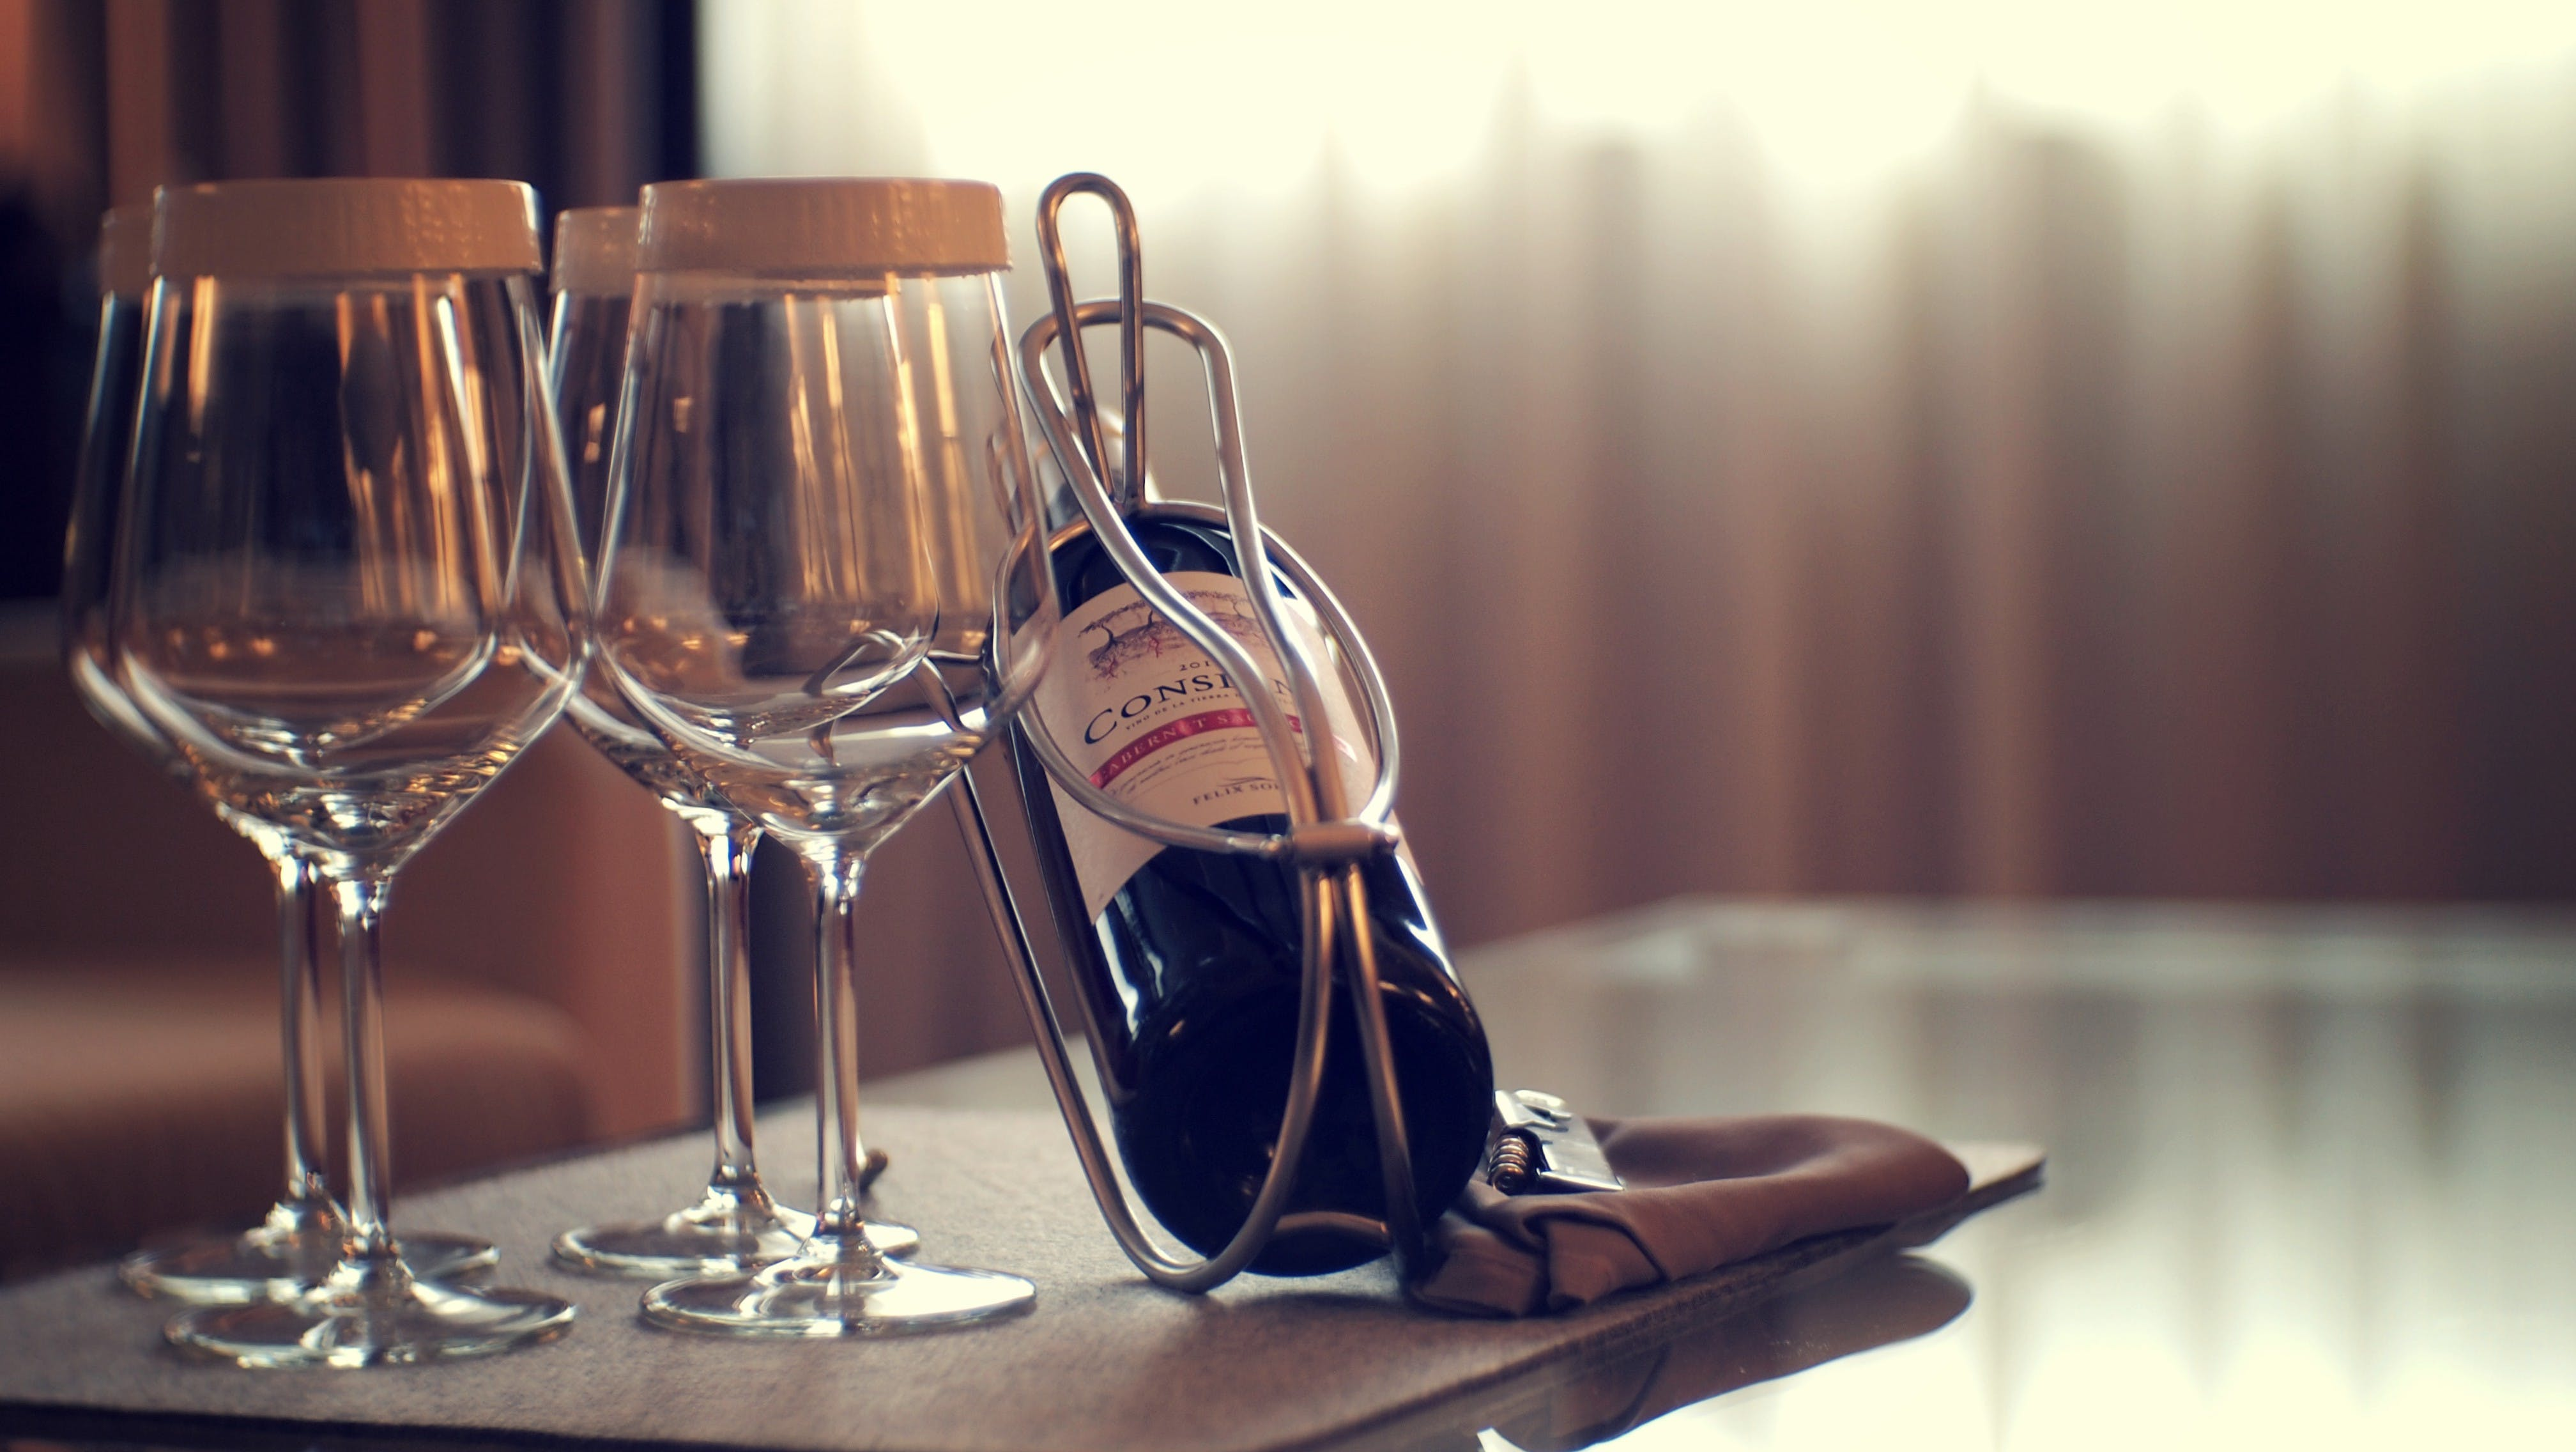 Free stock photo of bottle, glass, glass of wine, hotel room